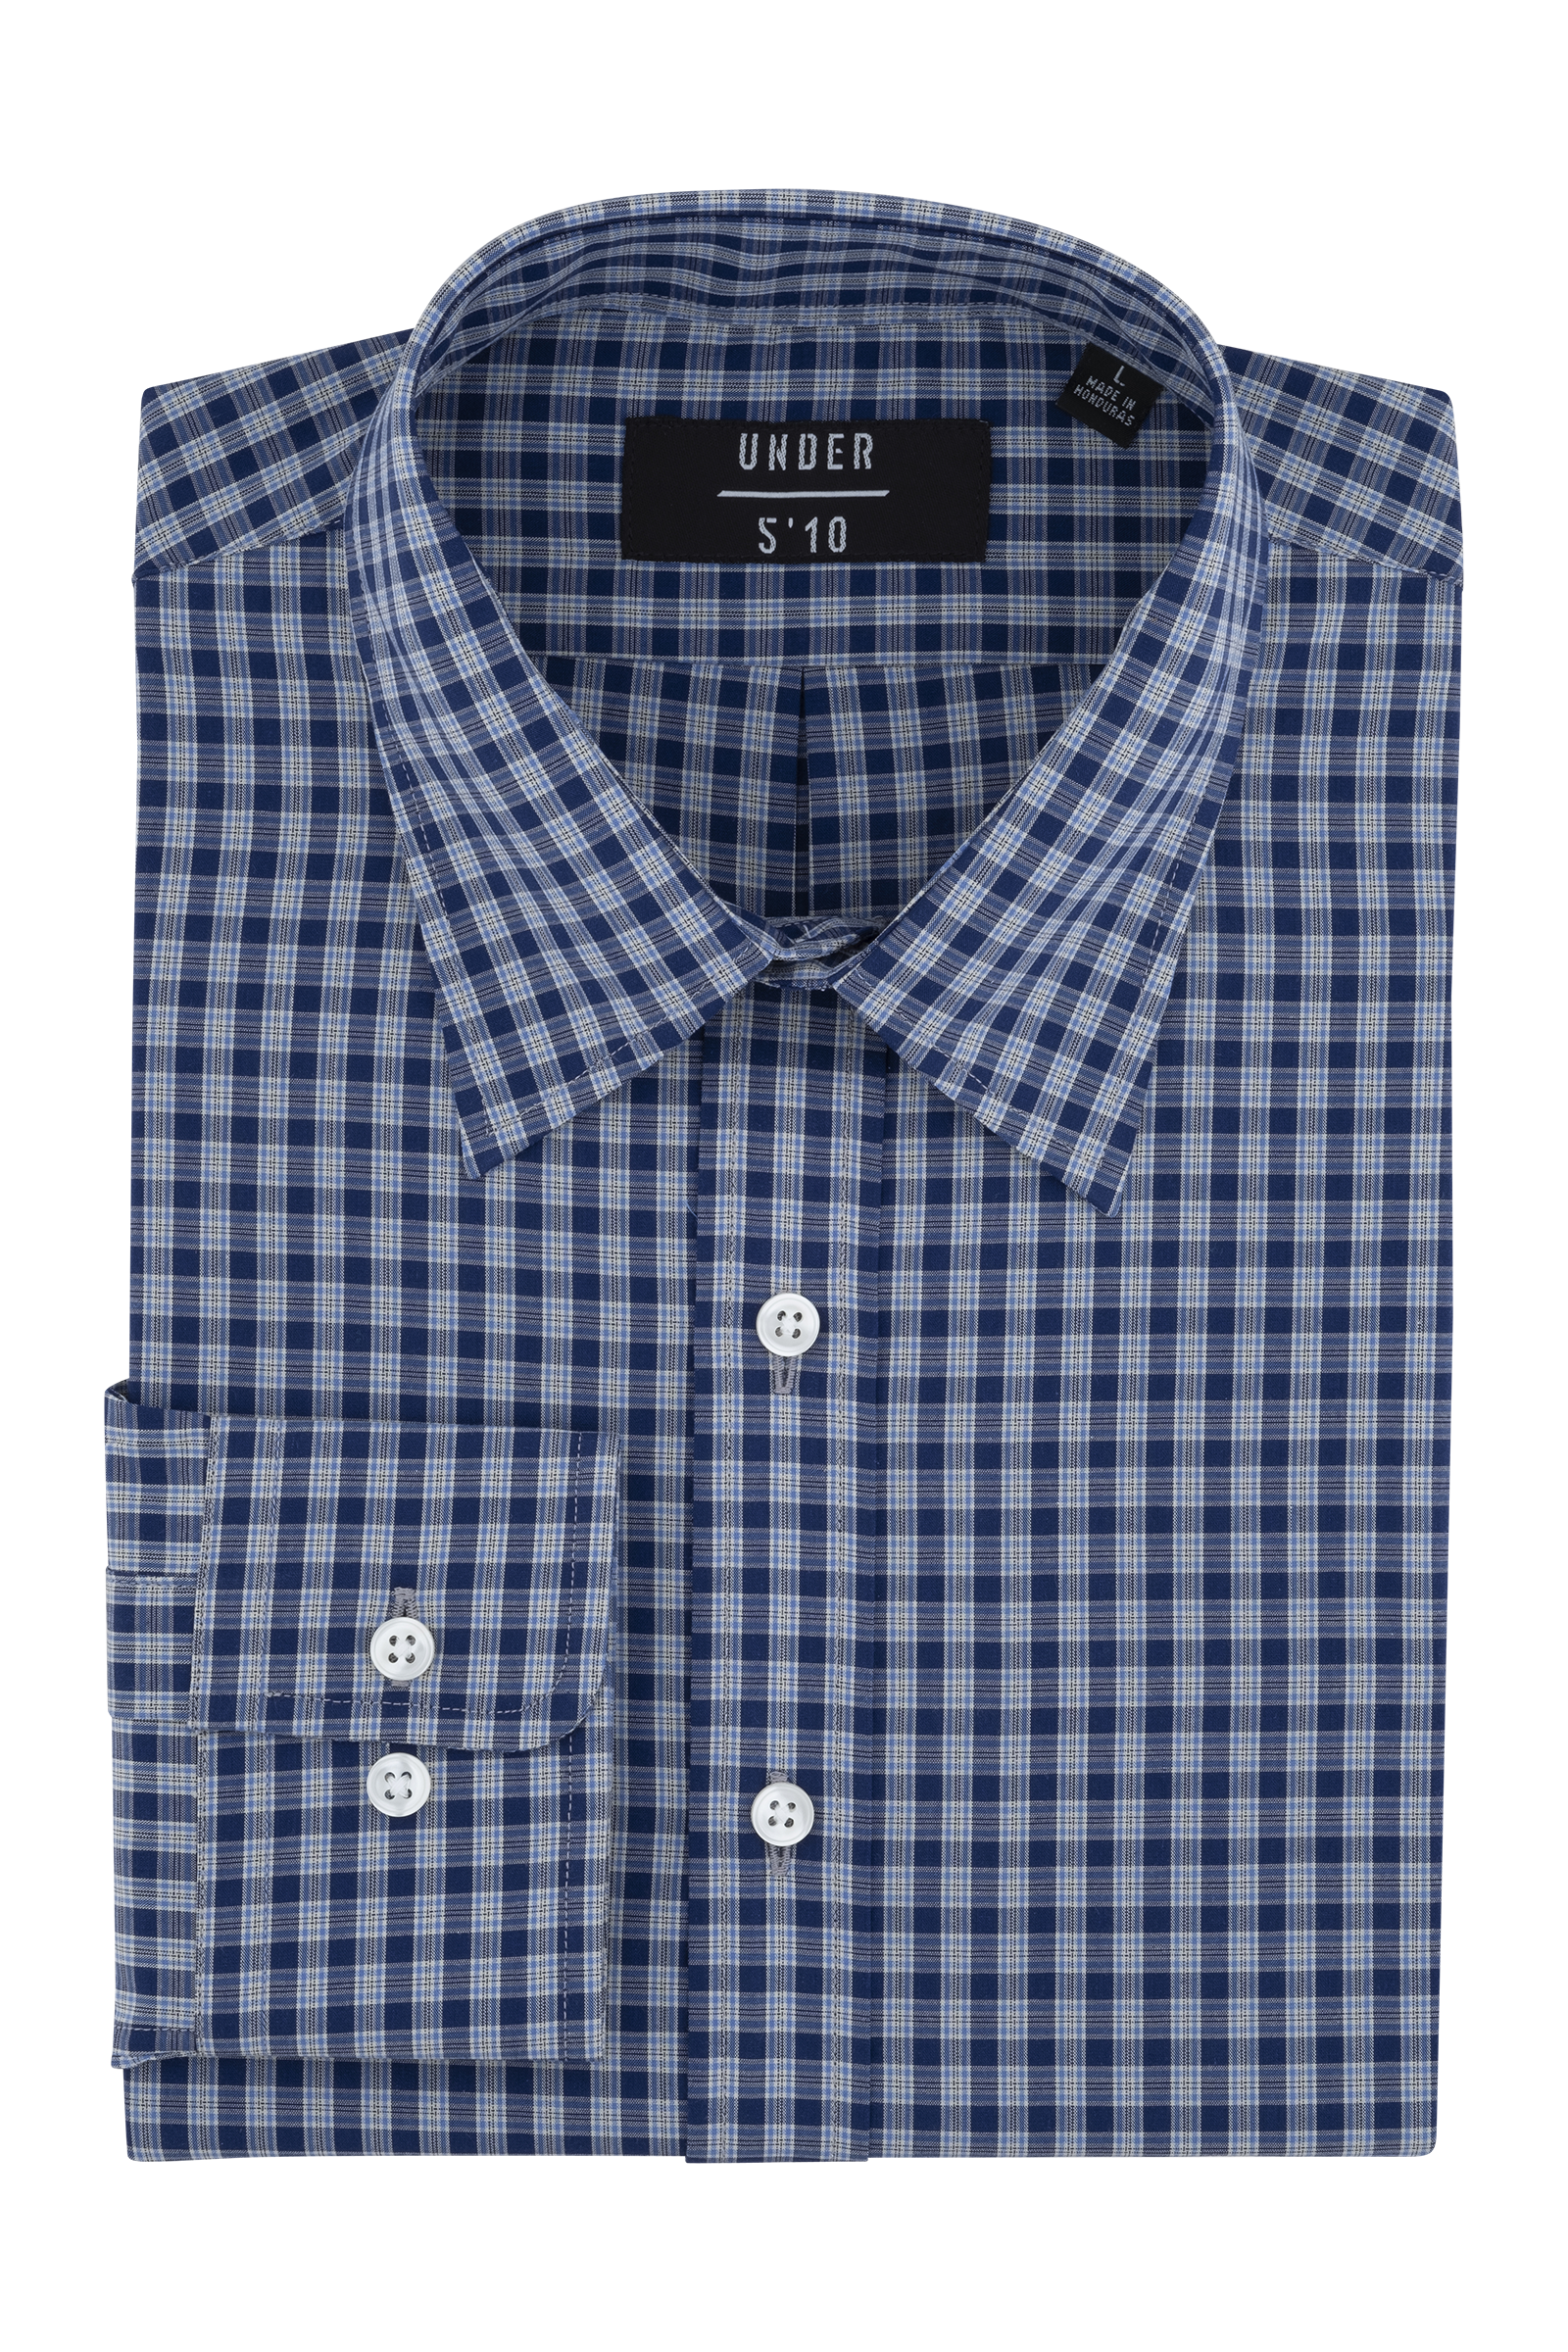 Blue Mini Tartan Button Down Shirt For Short Men and Men Under 5'10